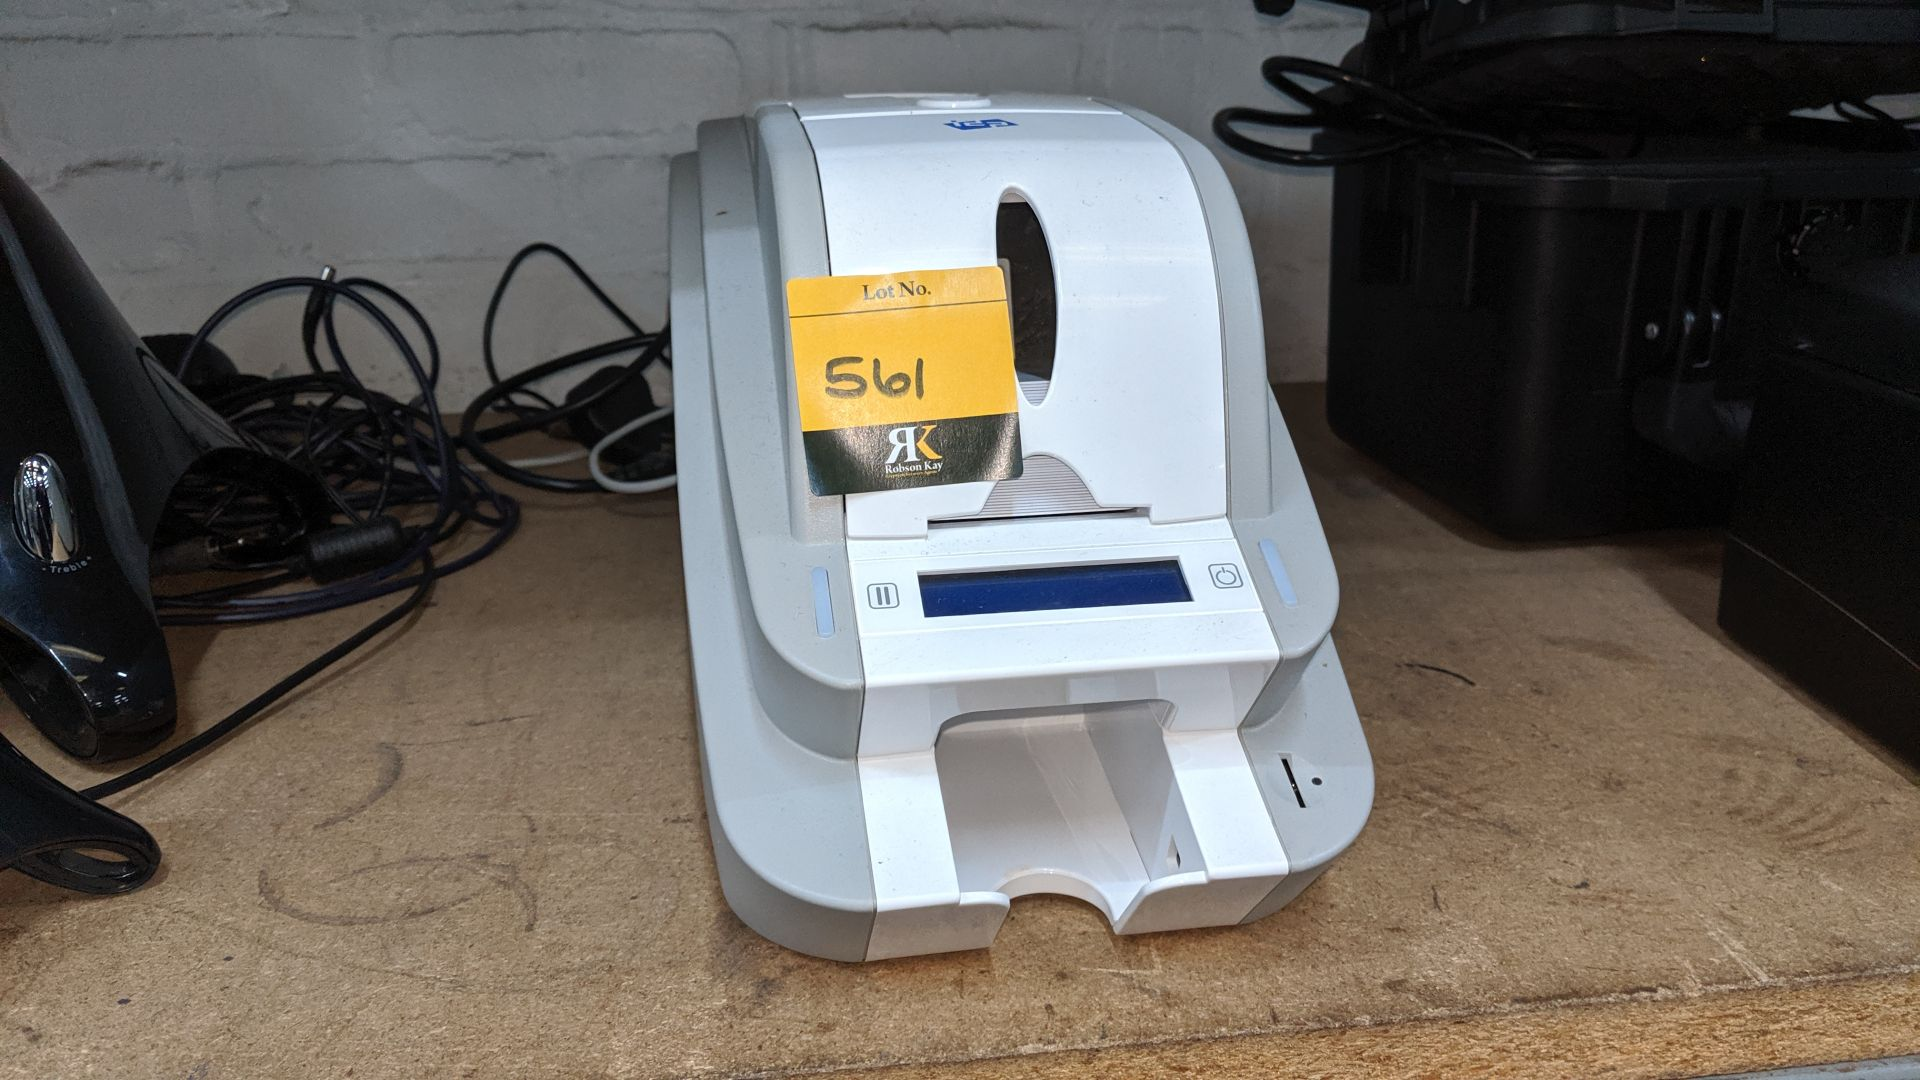 Lot 561 - IDP Smart-50S card printer. Lots 560 - 580 form the total assets of a healthcare recruitment company